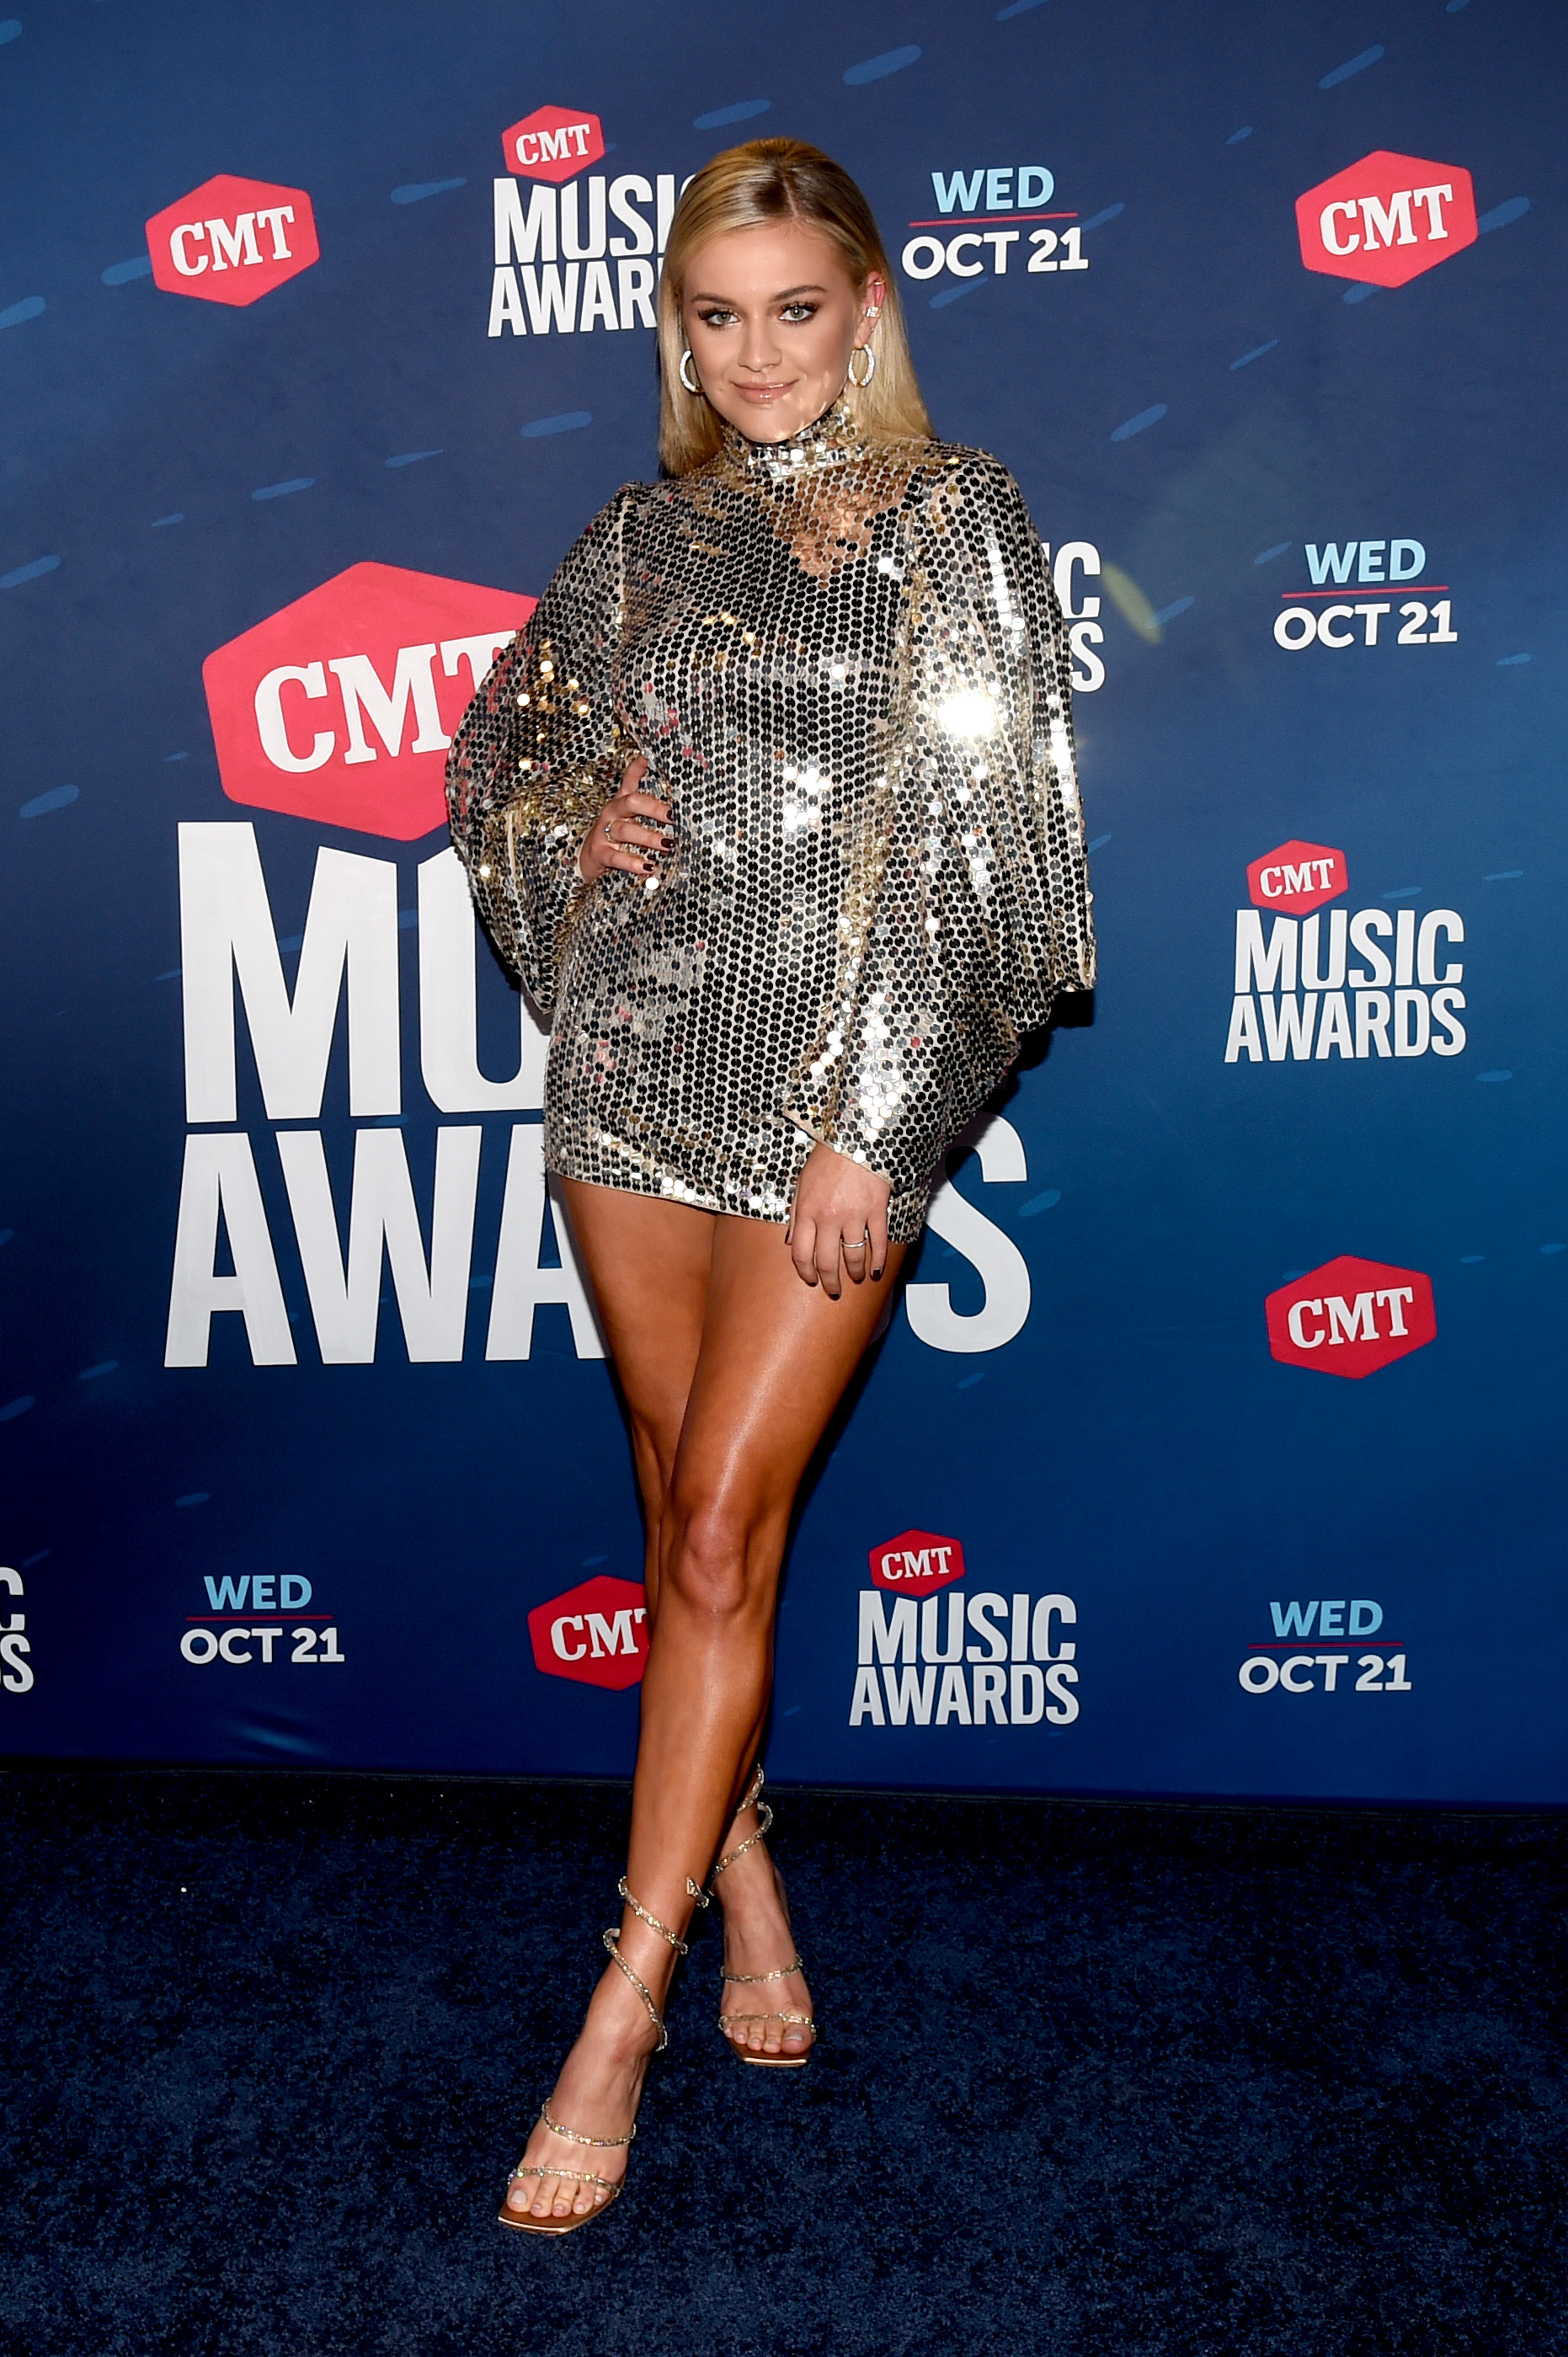 UNSPECIFIED - OCTOBER 21: In this image released on October 21, Kelsea Ballerini attends the 2020 CMT Awards broadcast on Wednesday October 21, 2020. (Photo by Kevin Winter/CMT2020/Getty Images for CMT)